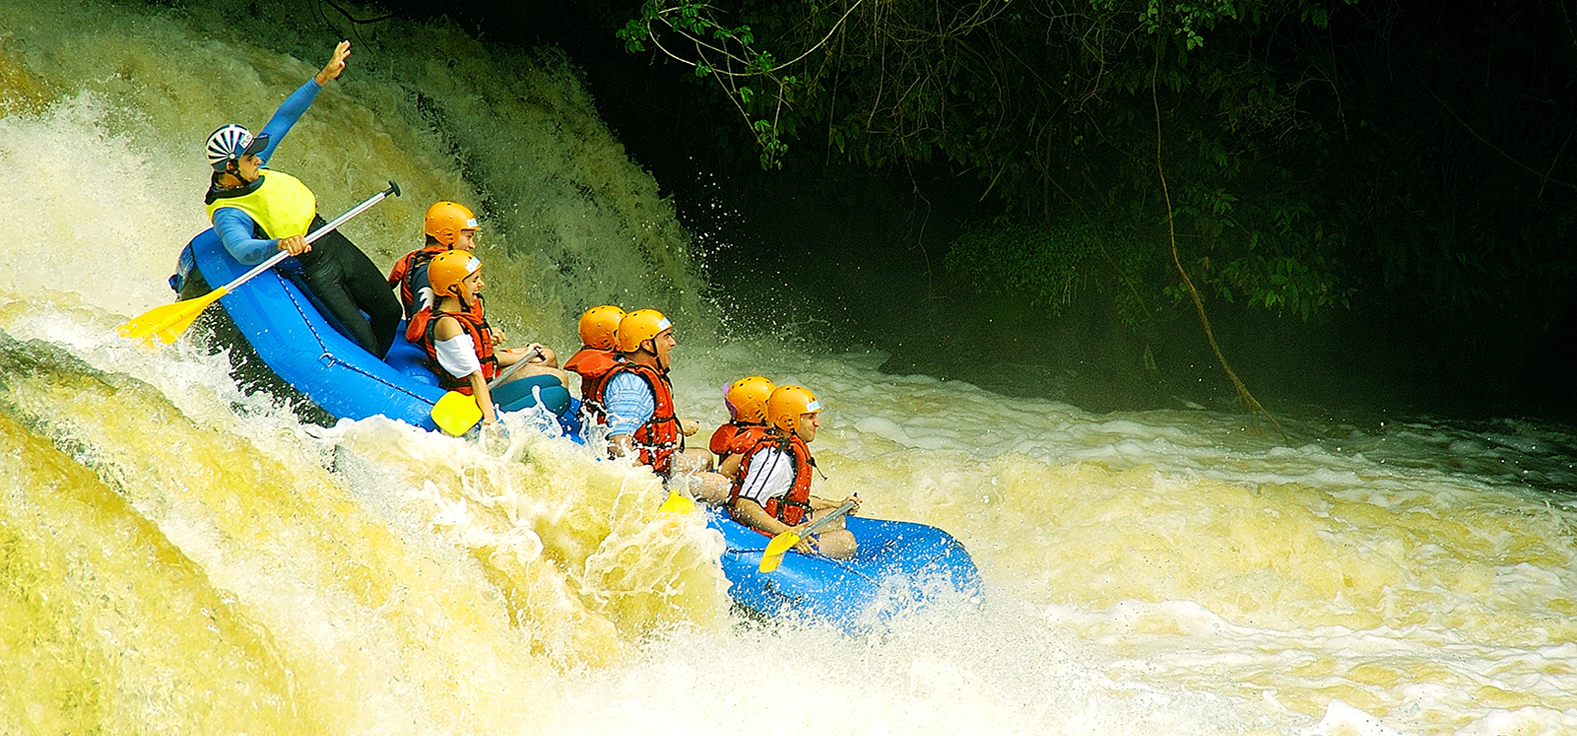 Rafting em Brotas | Portal Serra do Itaquerí